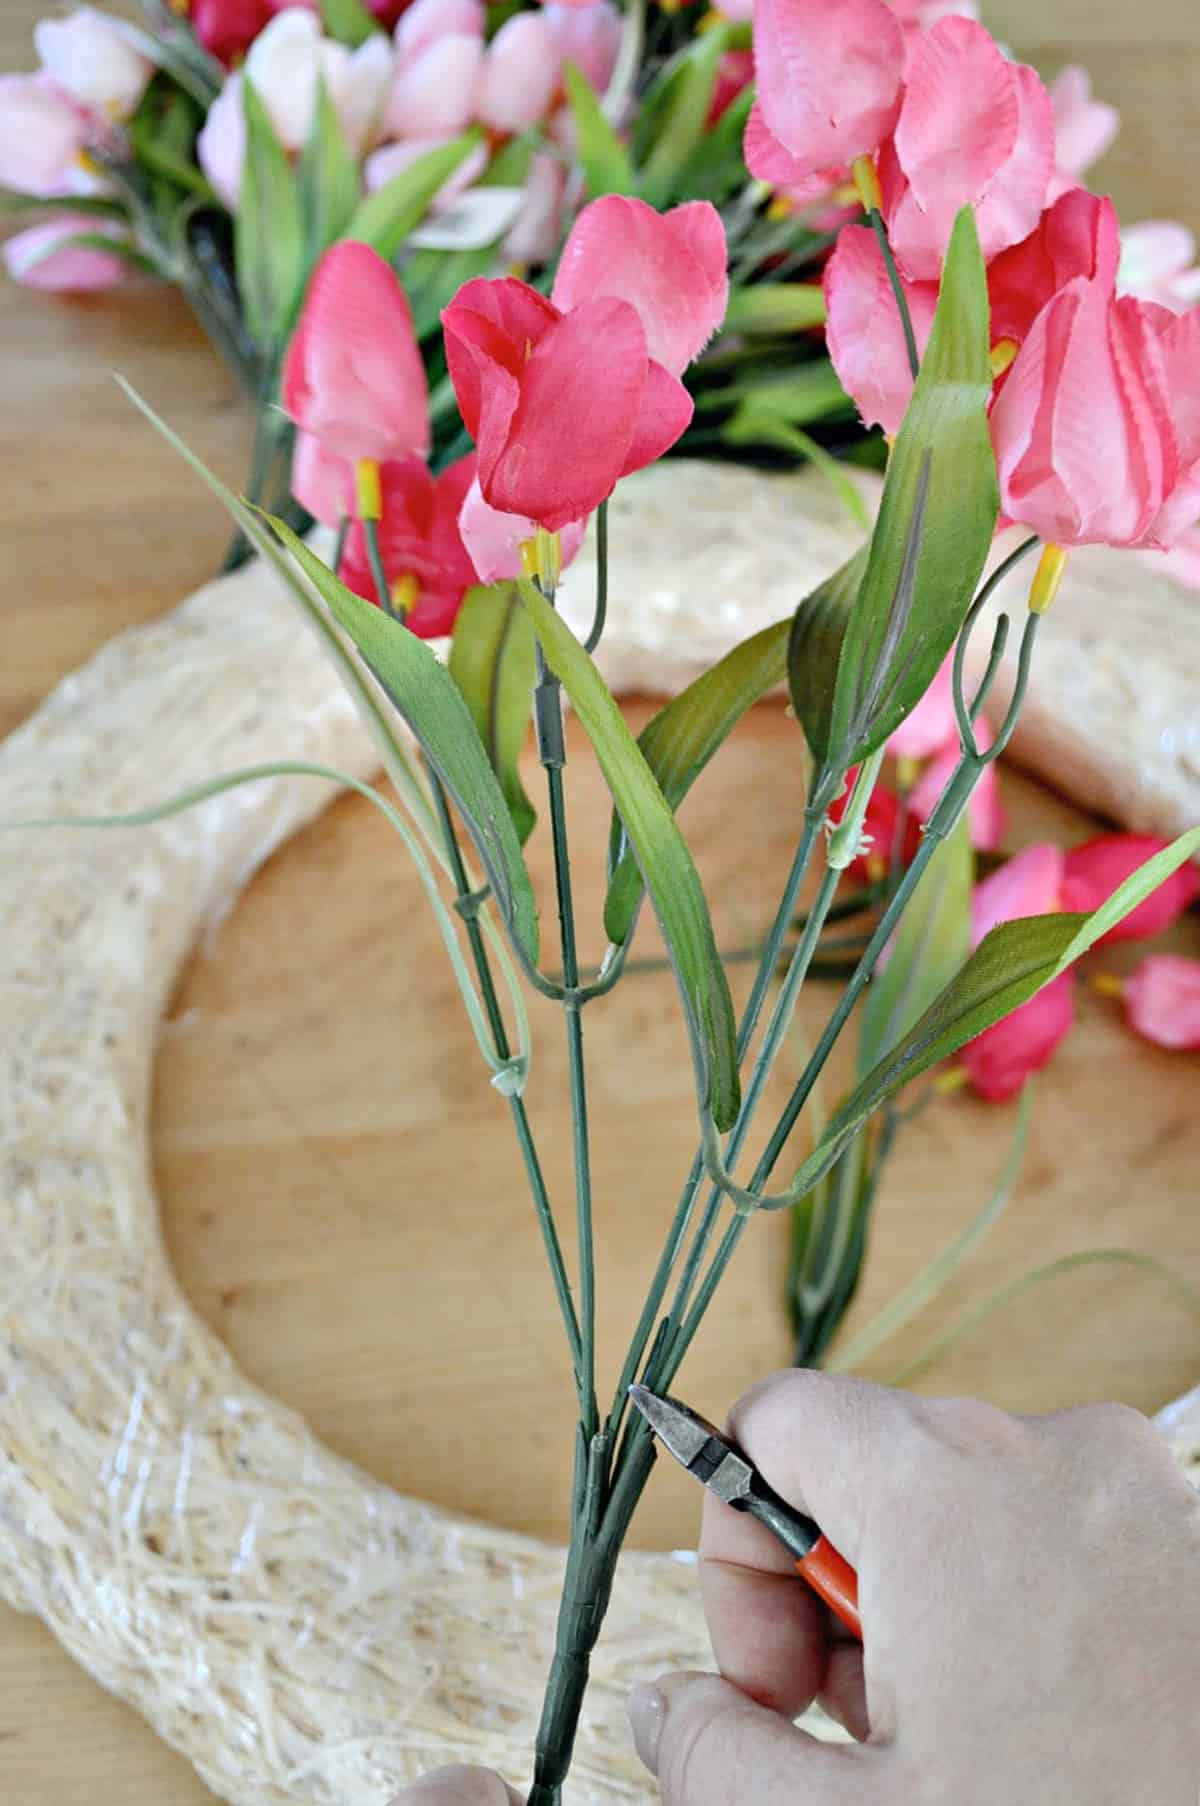 snipping faux pink tulips with nippers